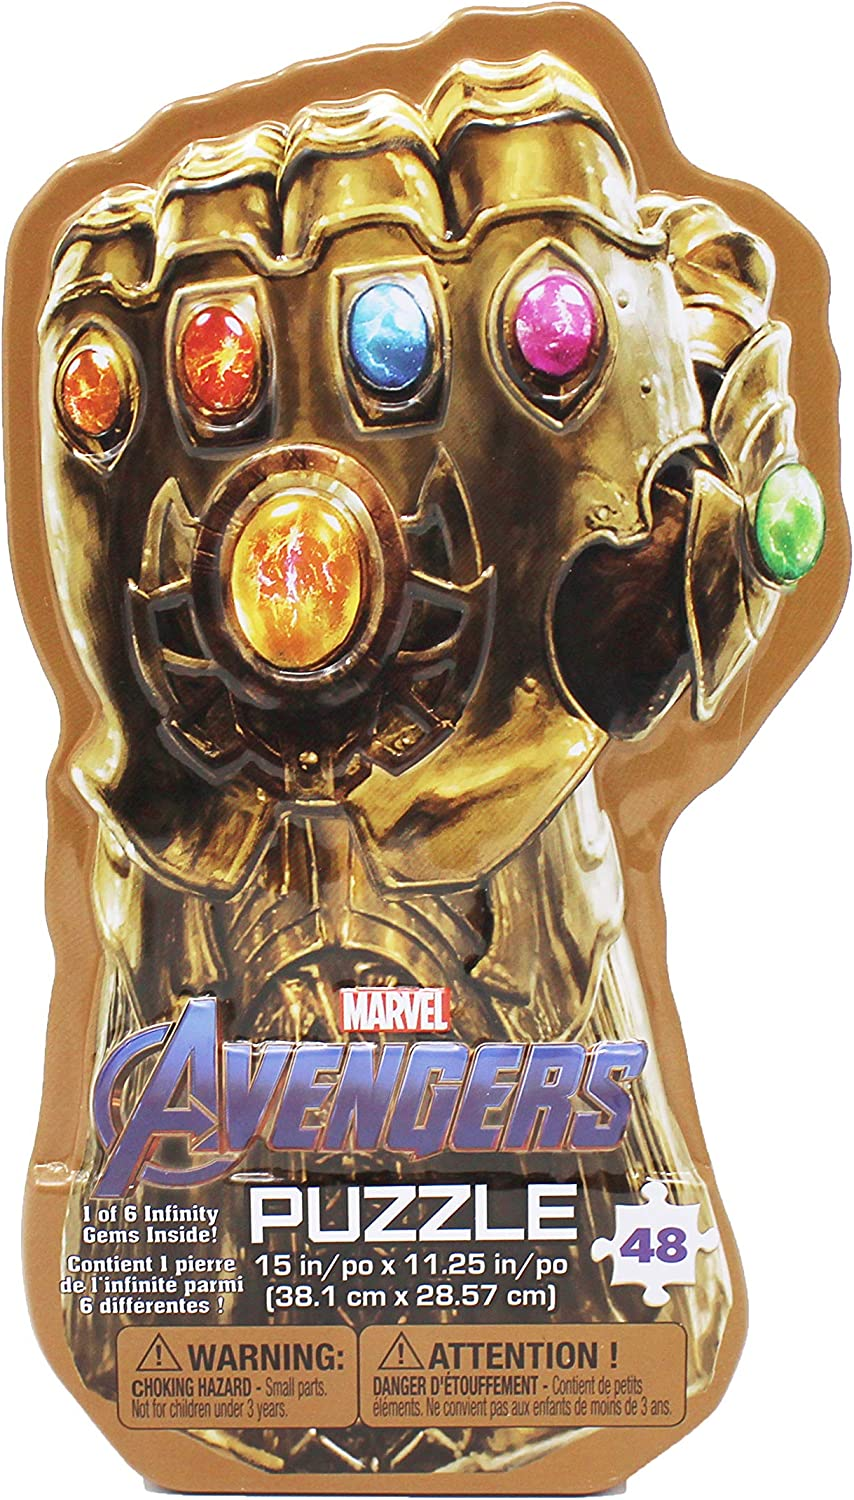 Infinity Stones for Thanos Gauntlet Marvel Avengers Infinity War Lot of 6